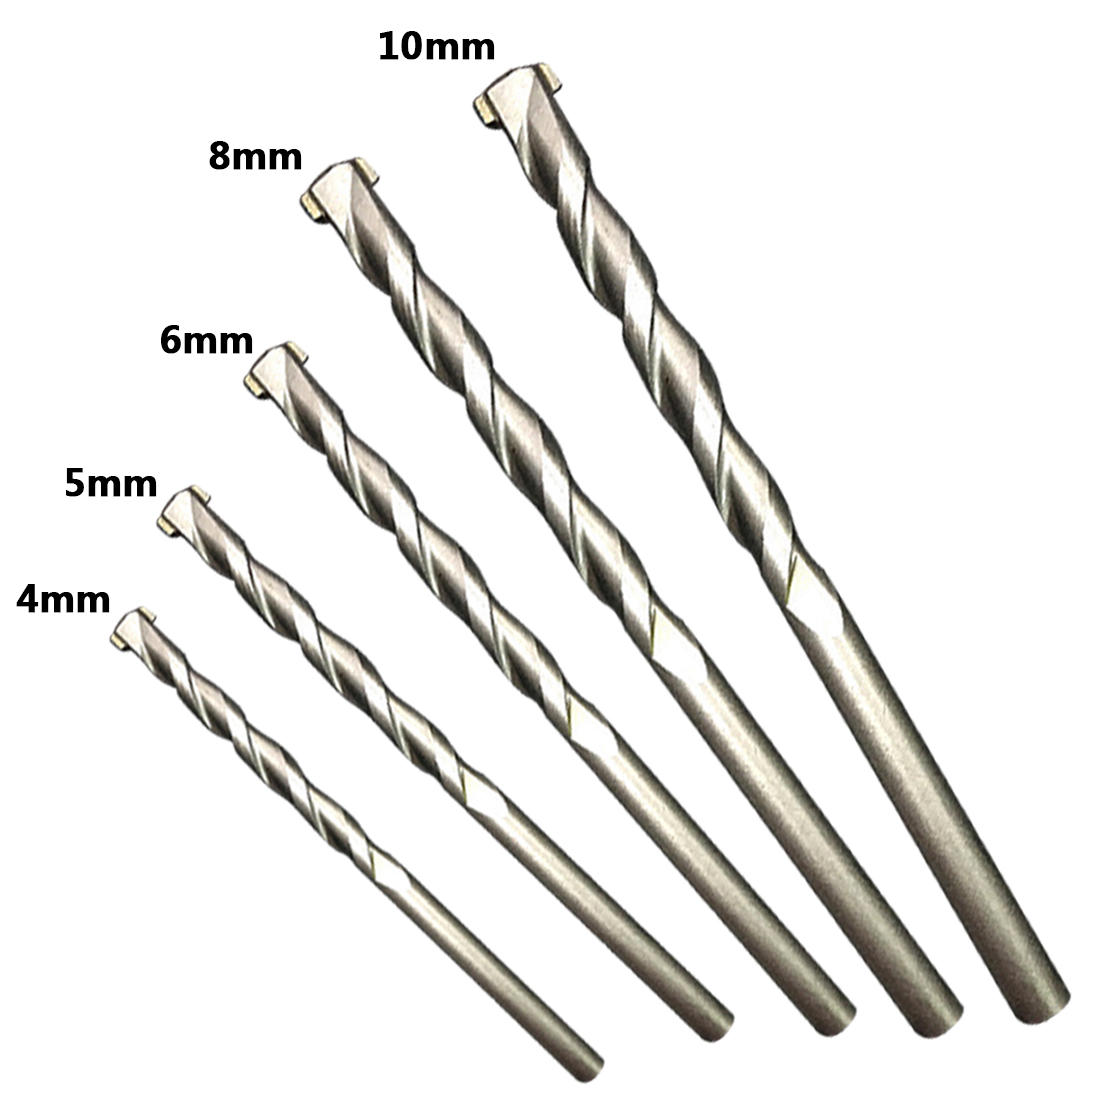 7mm x 150mm PROFESSIONAL MASONRY DRILL BITS TUNGSTEN CARBIDE TIP IMPACT BIT